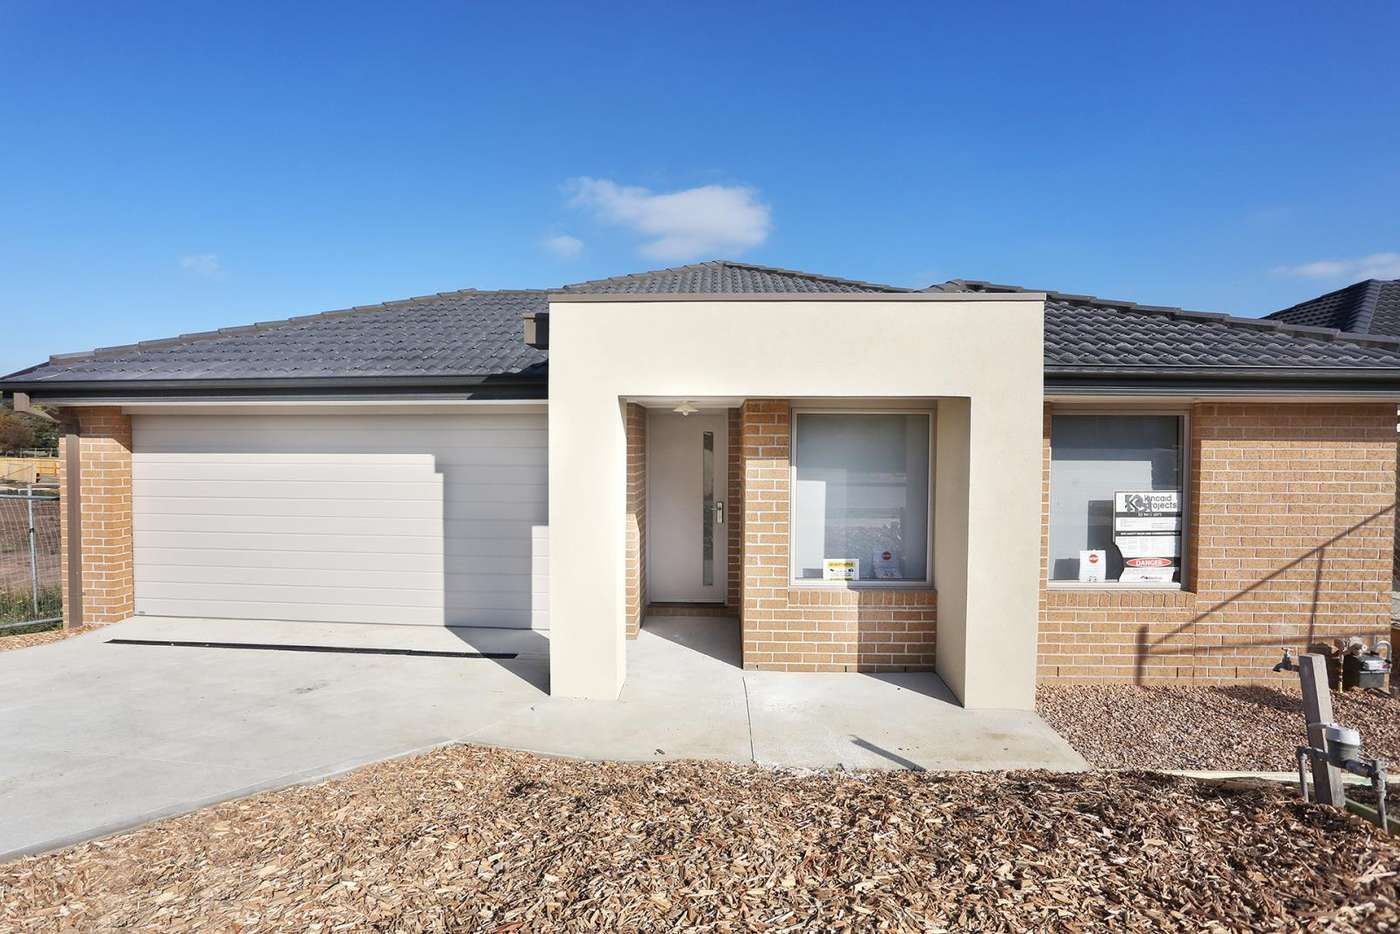 Main view of Homely house listing, 23 Thaine Way, Doreen VIC 3754